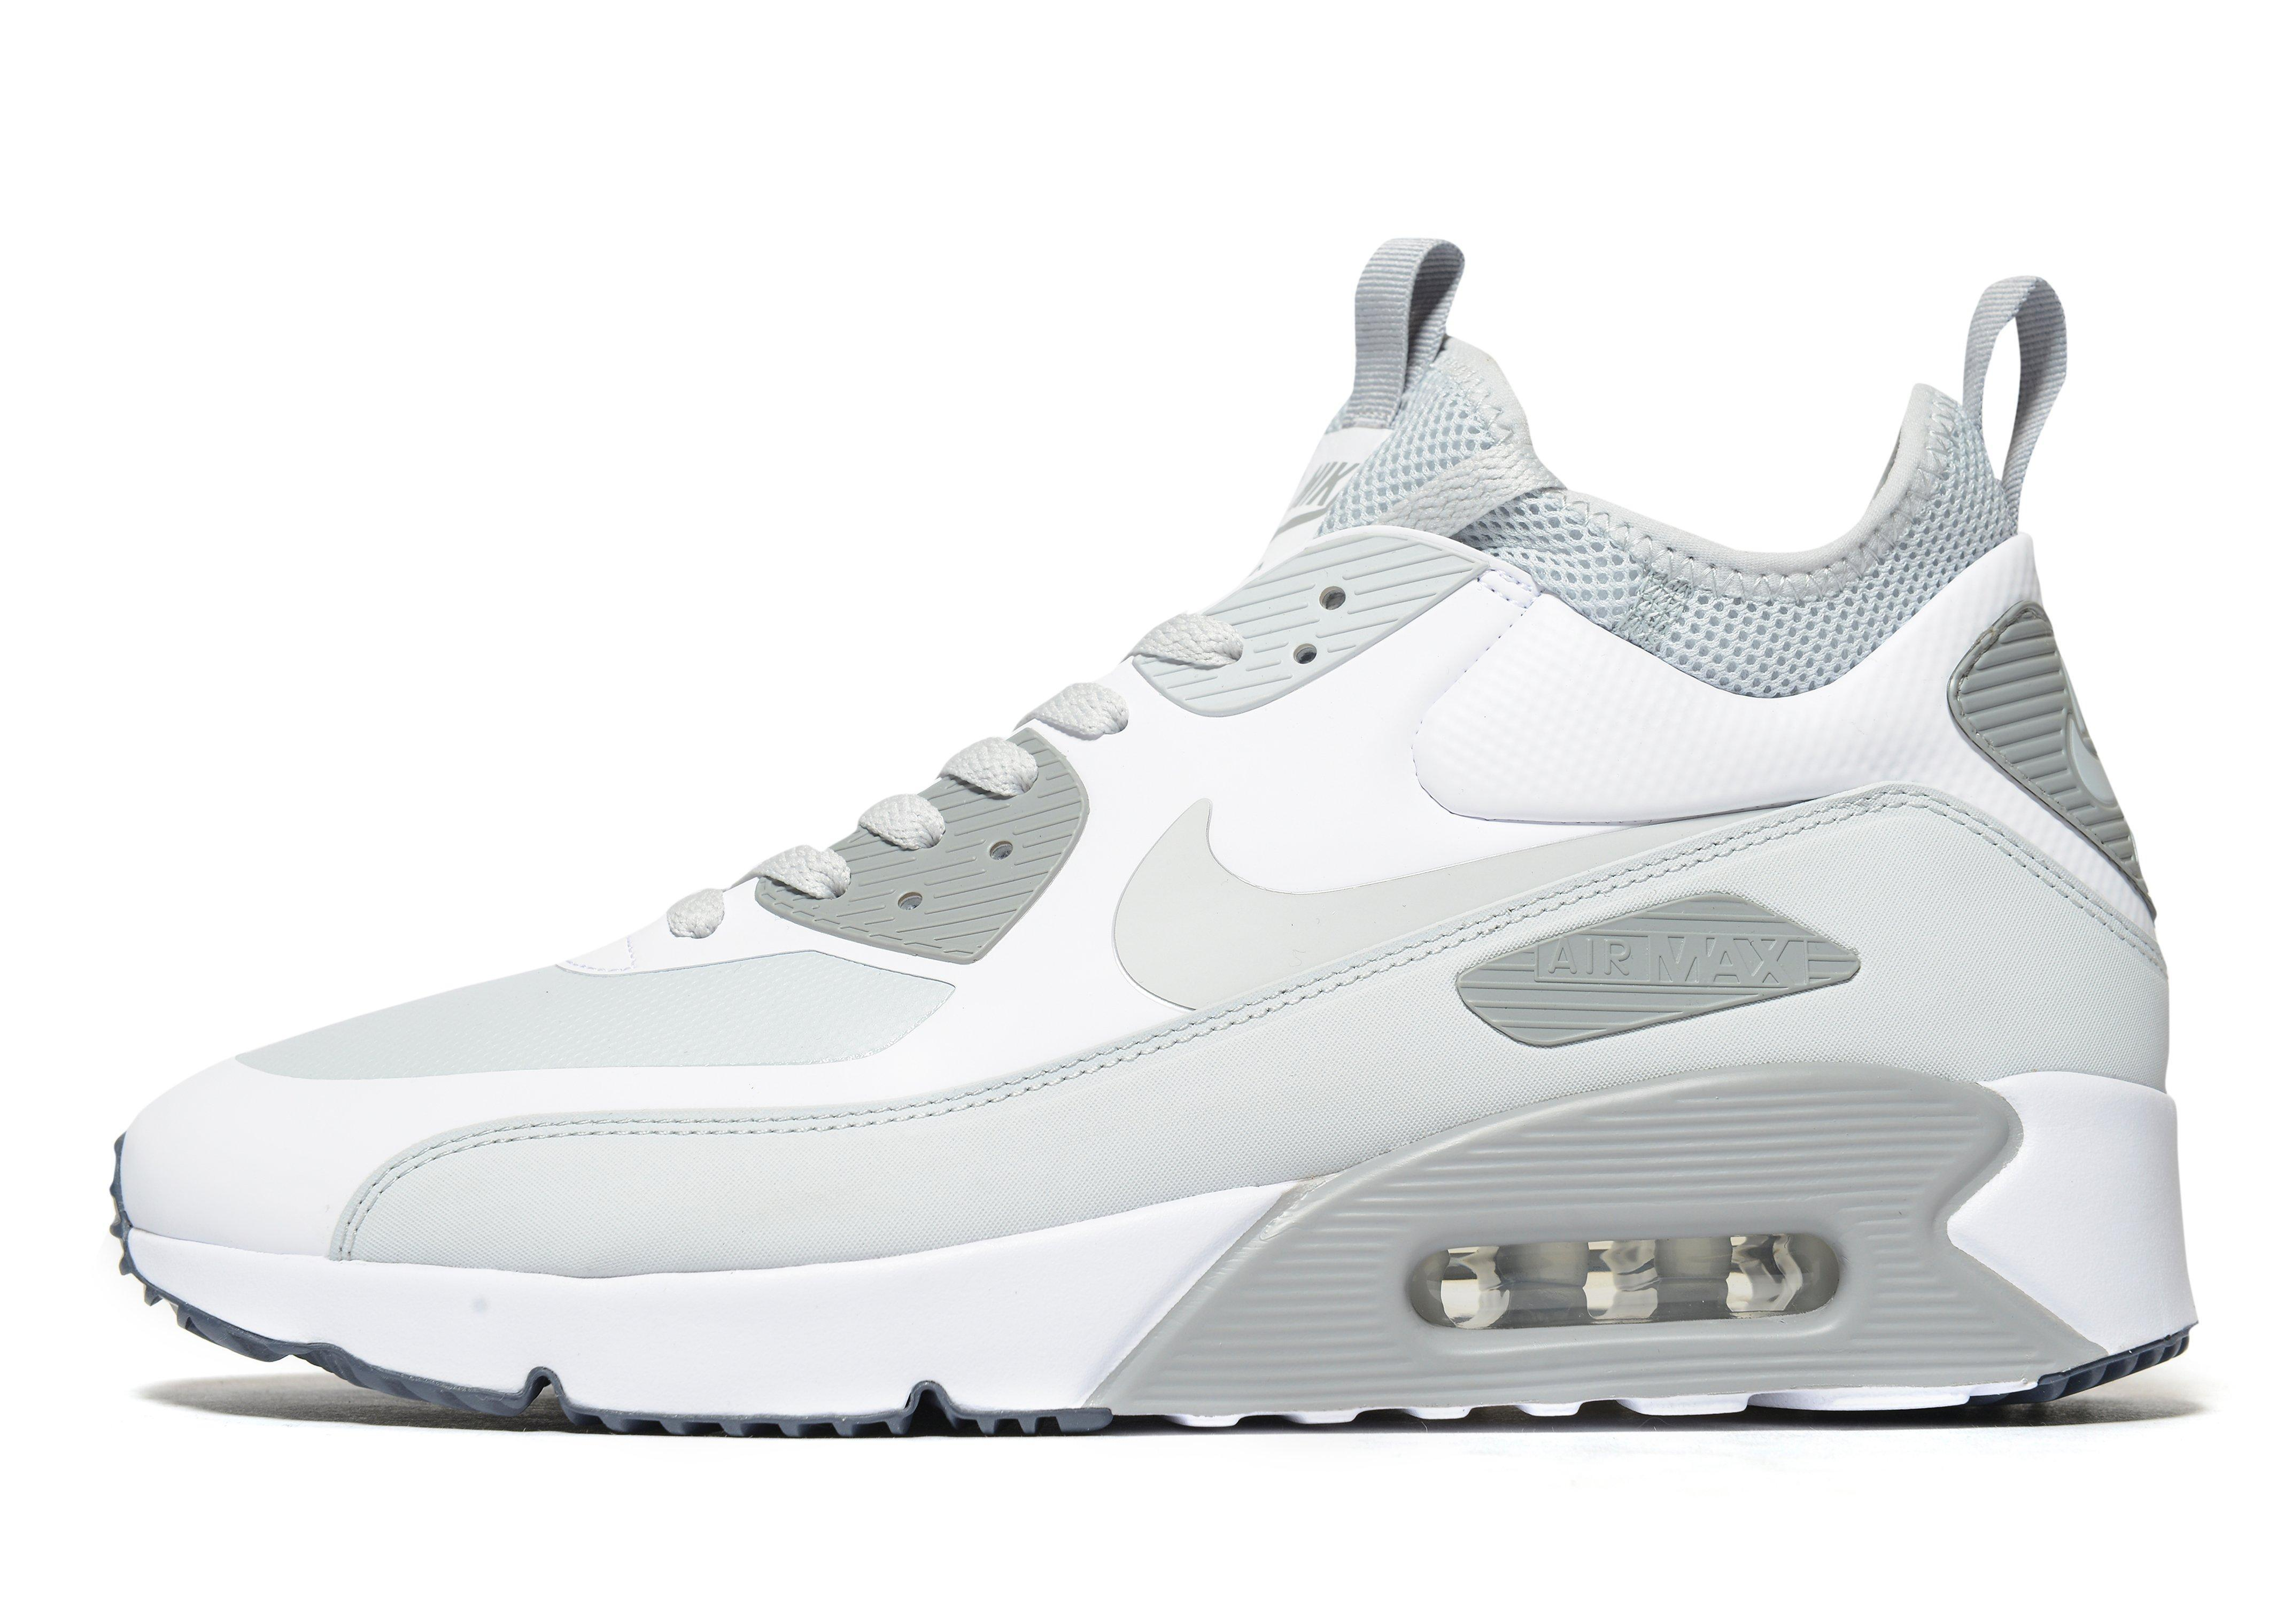 half off 0ff0c f3a36 Nike Rubber Air Max 90 Ultra Mid Winter in White for Men - Lyst